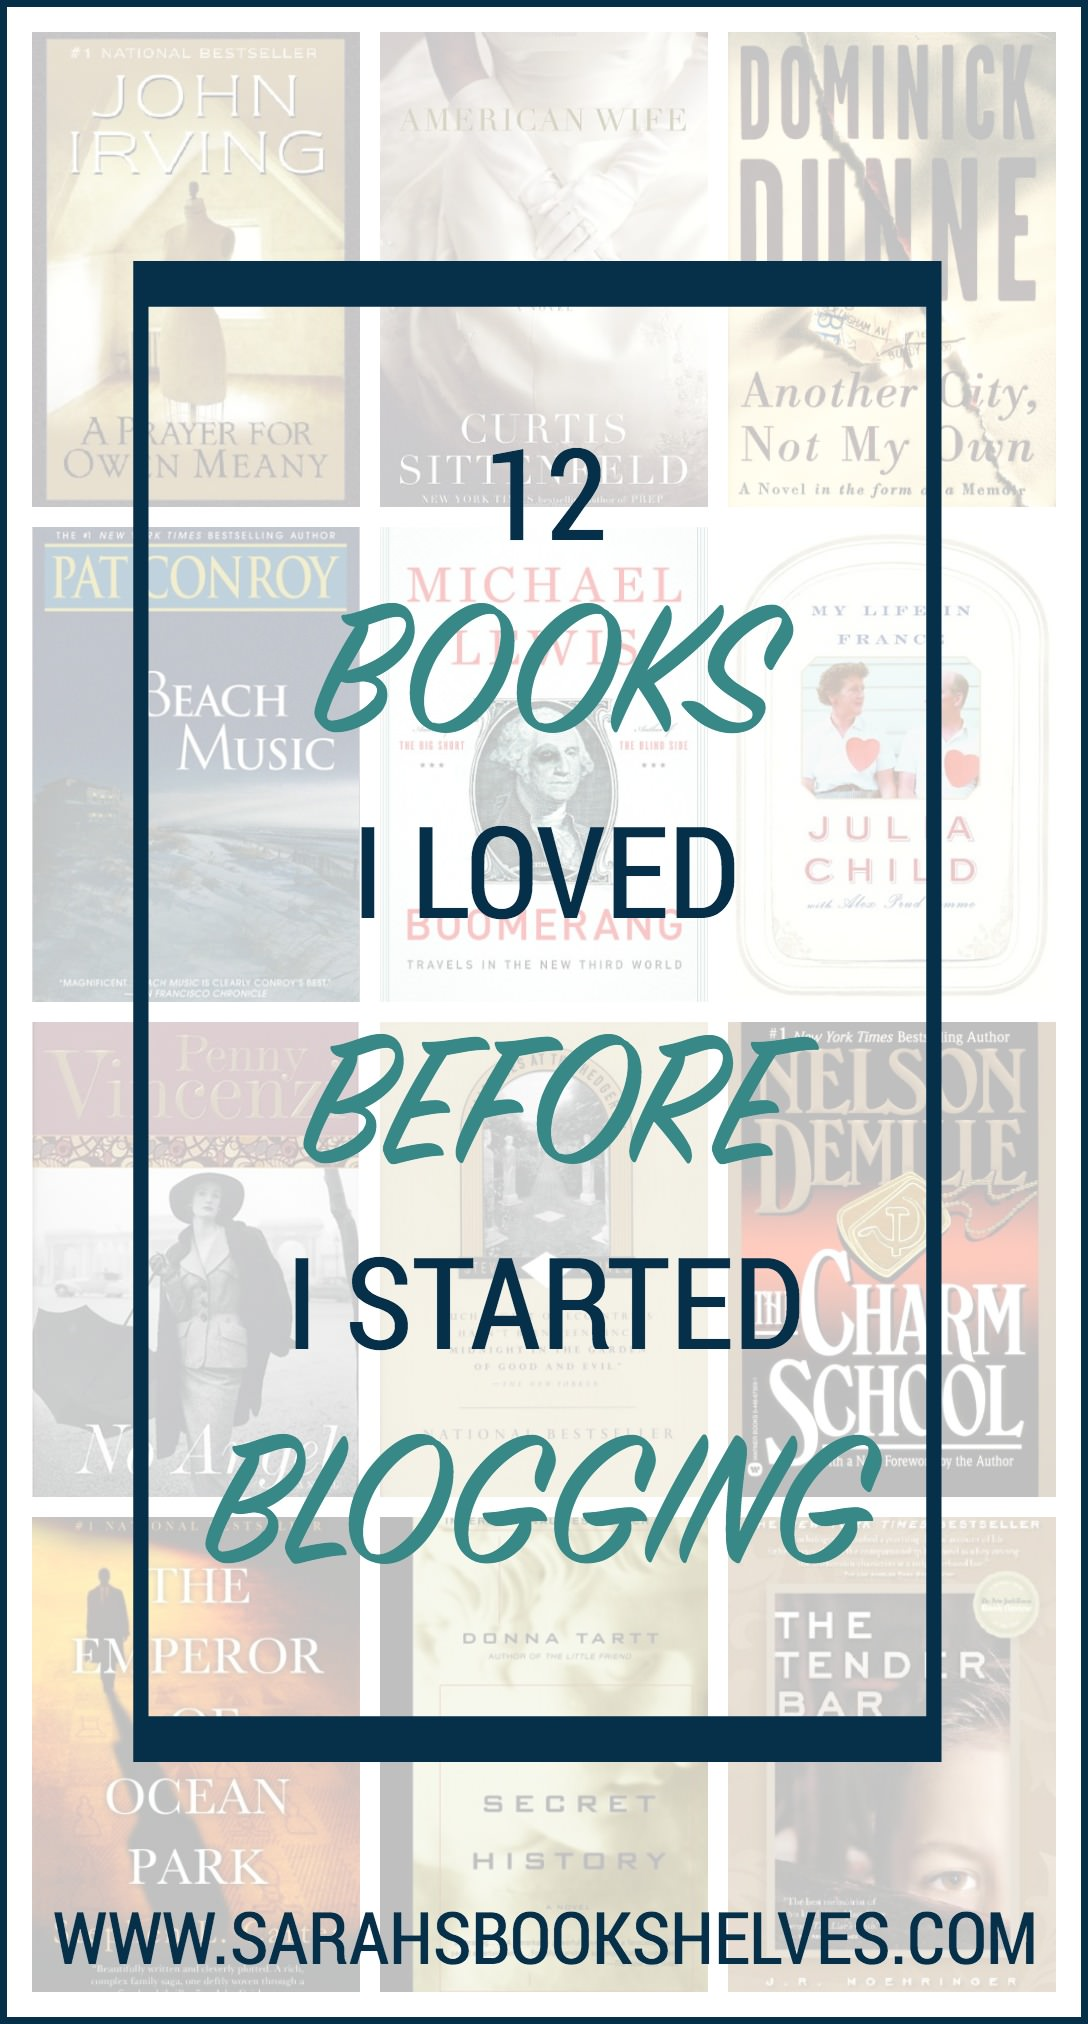 There are so many books I adored years ago that I don't talk about much here, so today I'm going to spotlight 12 Books I Loved Before I Started Blogging...